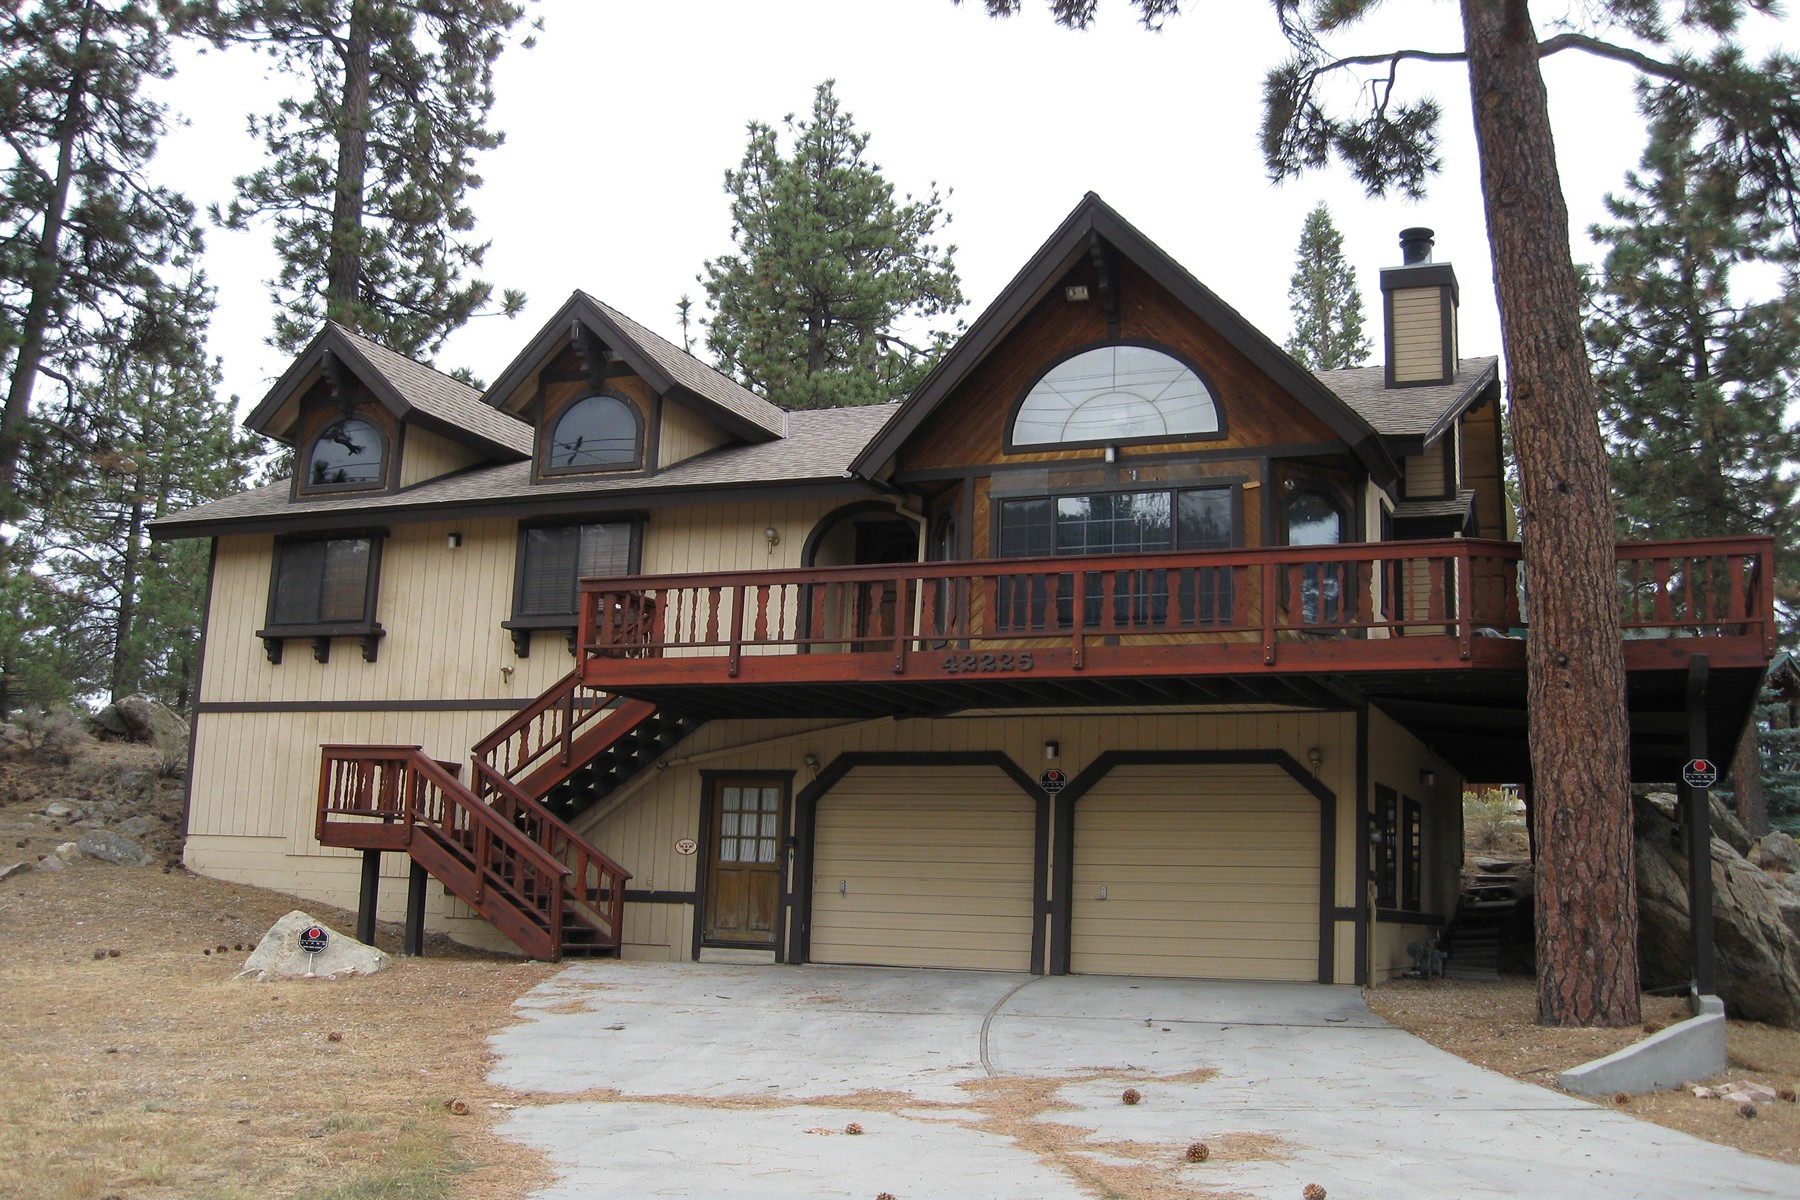 Single Family Home for Sale at 42225 North Shore Big Bear City, California 92314 United States